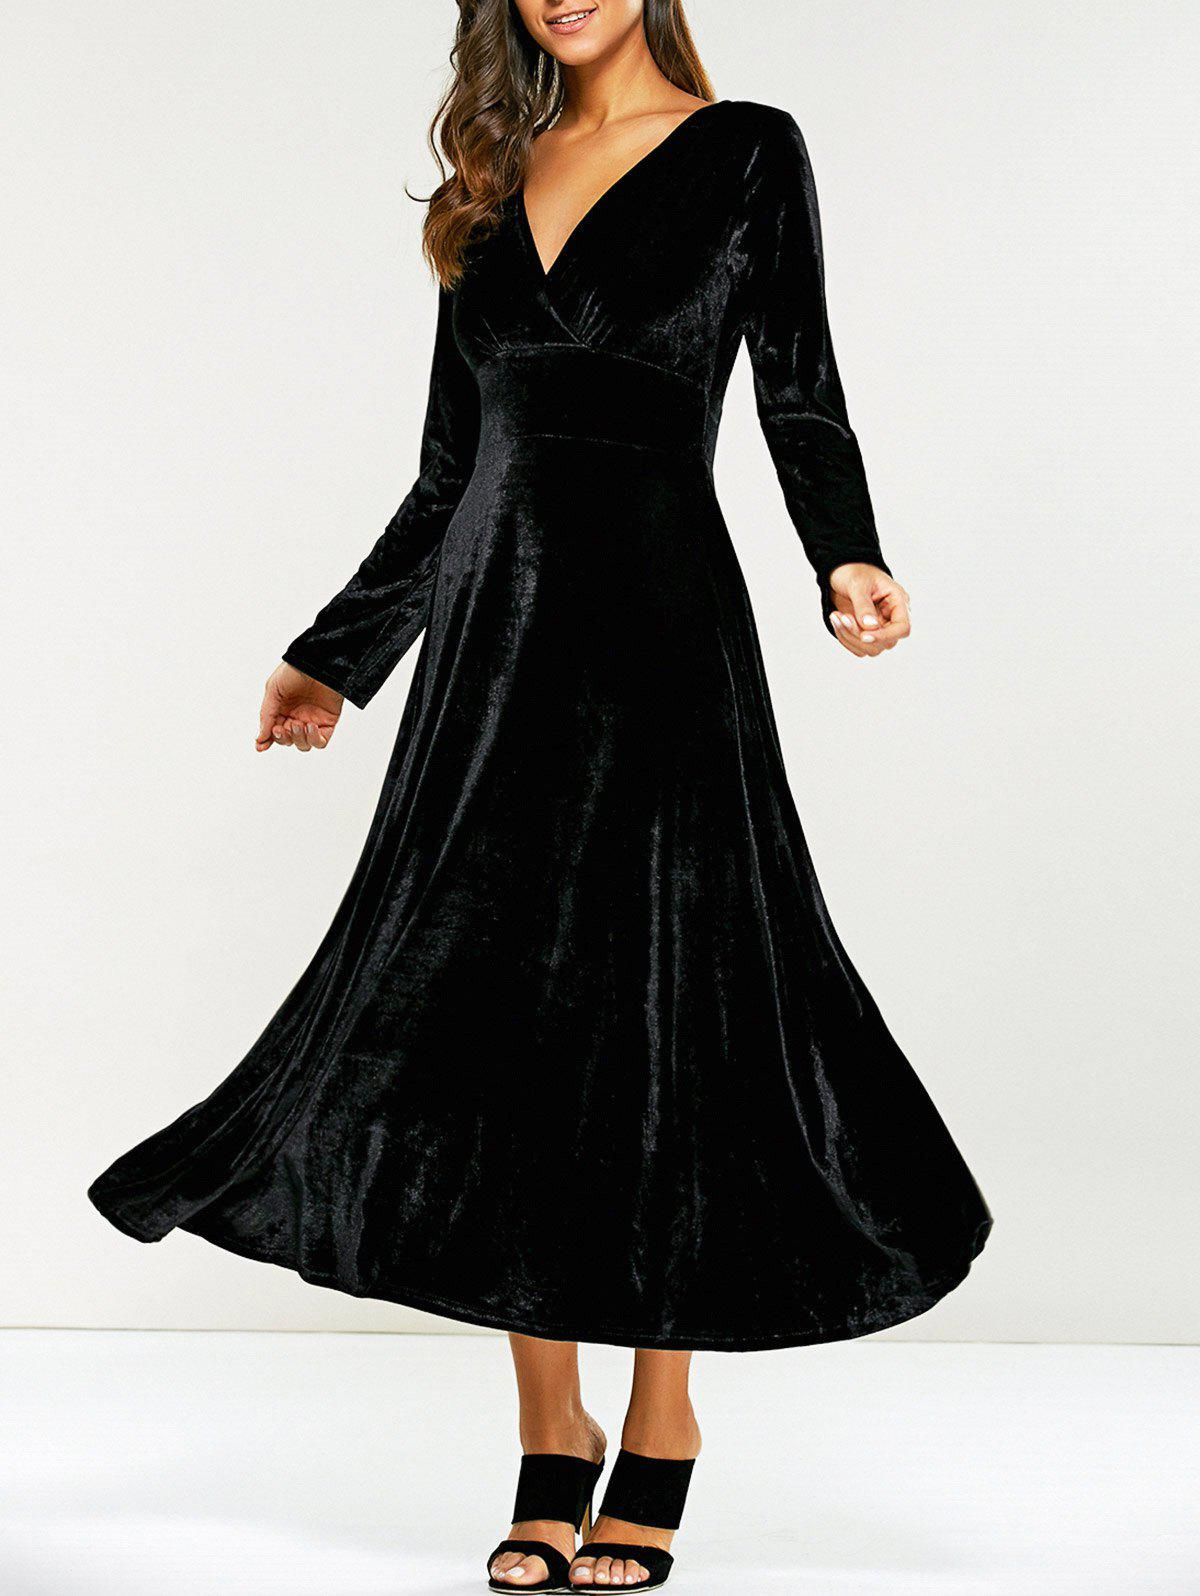 Surplice Velvet Tea Length Long Sleeve DressWOMEN<br><br>Size: 2XL; Color: BLACK; Style: Casual; Material: Polyester; Silhouette: A-Line; Dresses Length: Mid-Calf; Neckline: V-Neck; Sleeve Length: Long Sleeves; Pattern Type: Solid; With Belt: No; Season: Fall,Spring; Weight: 0.570kg; Package Contents: 1 x Dress;